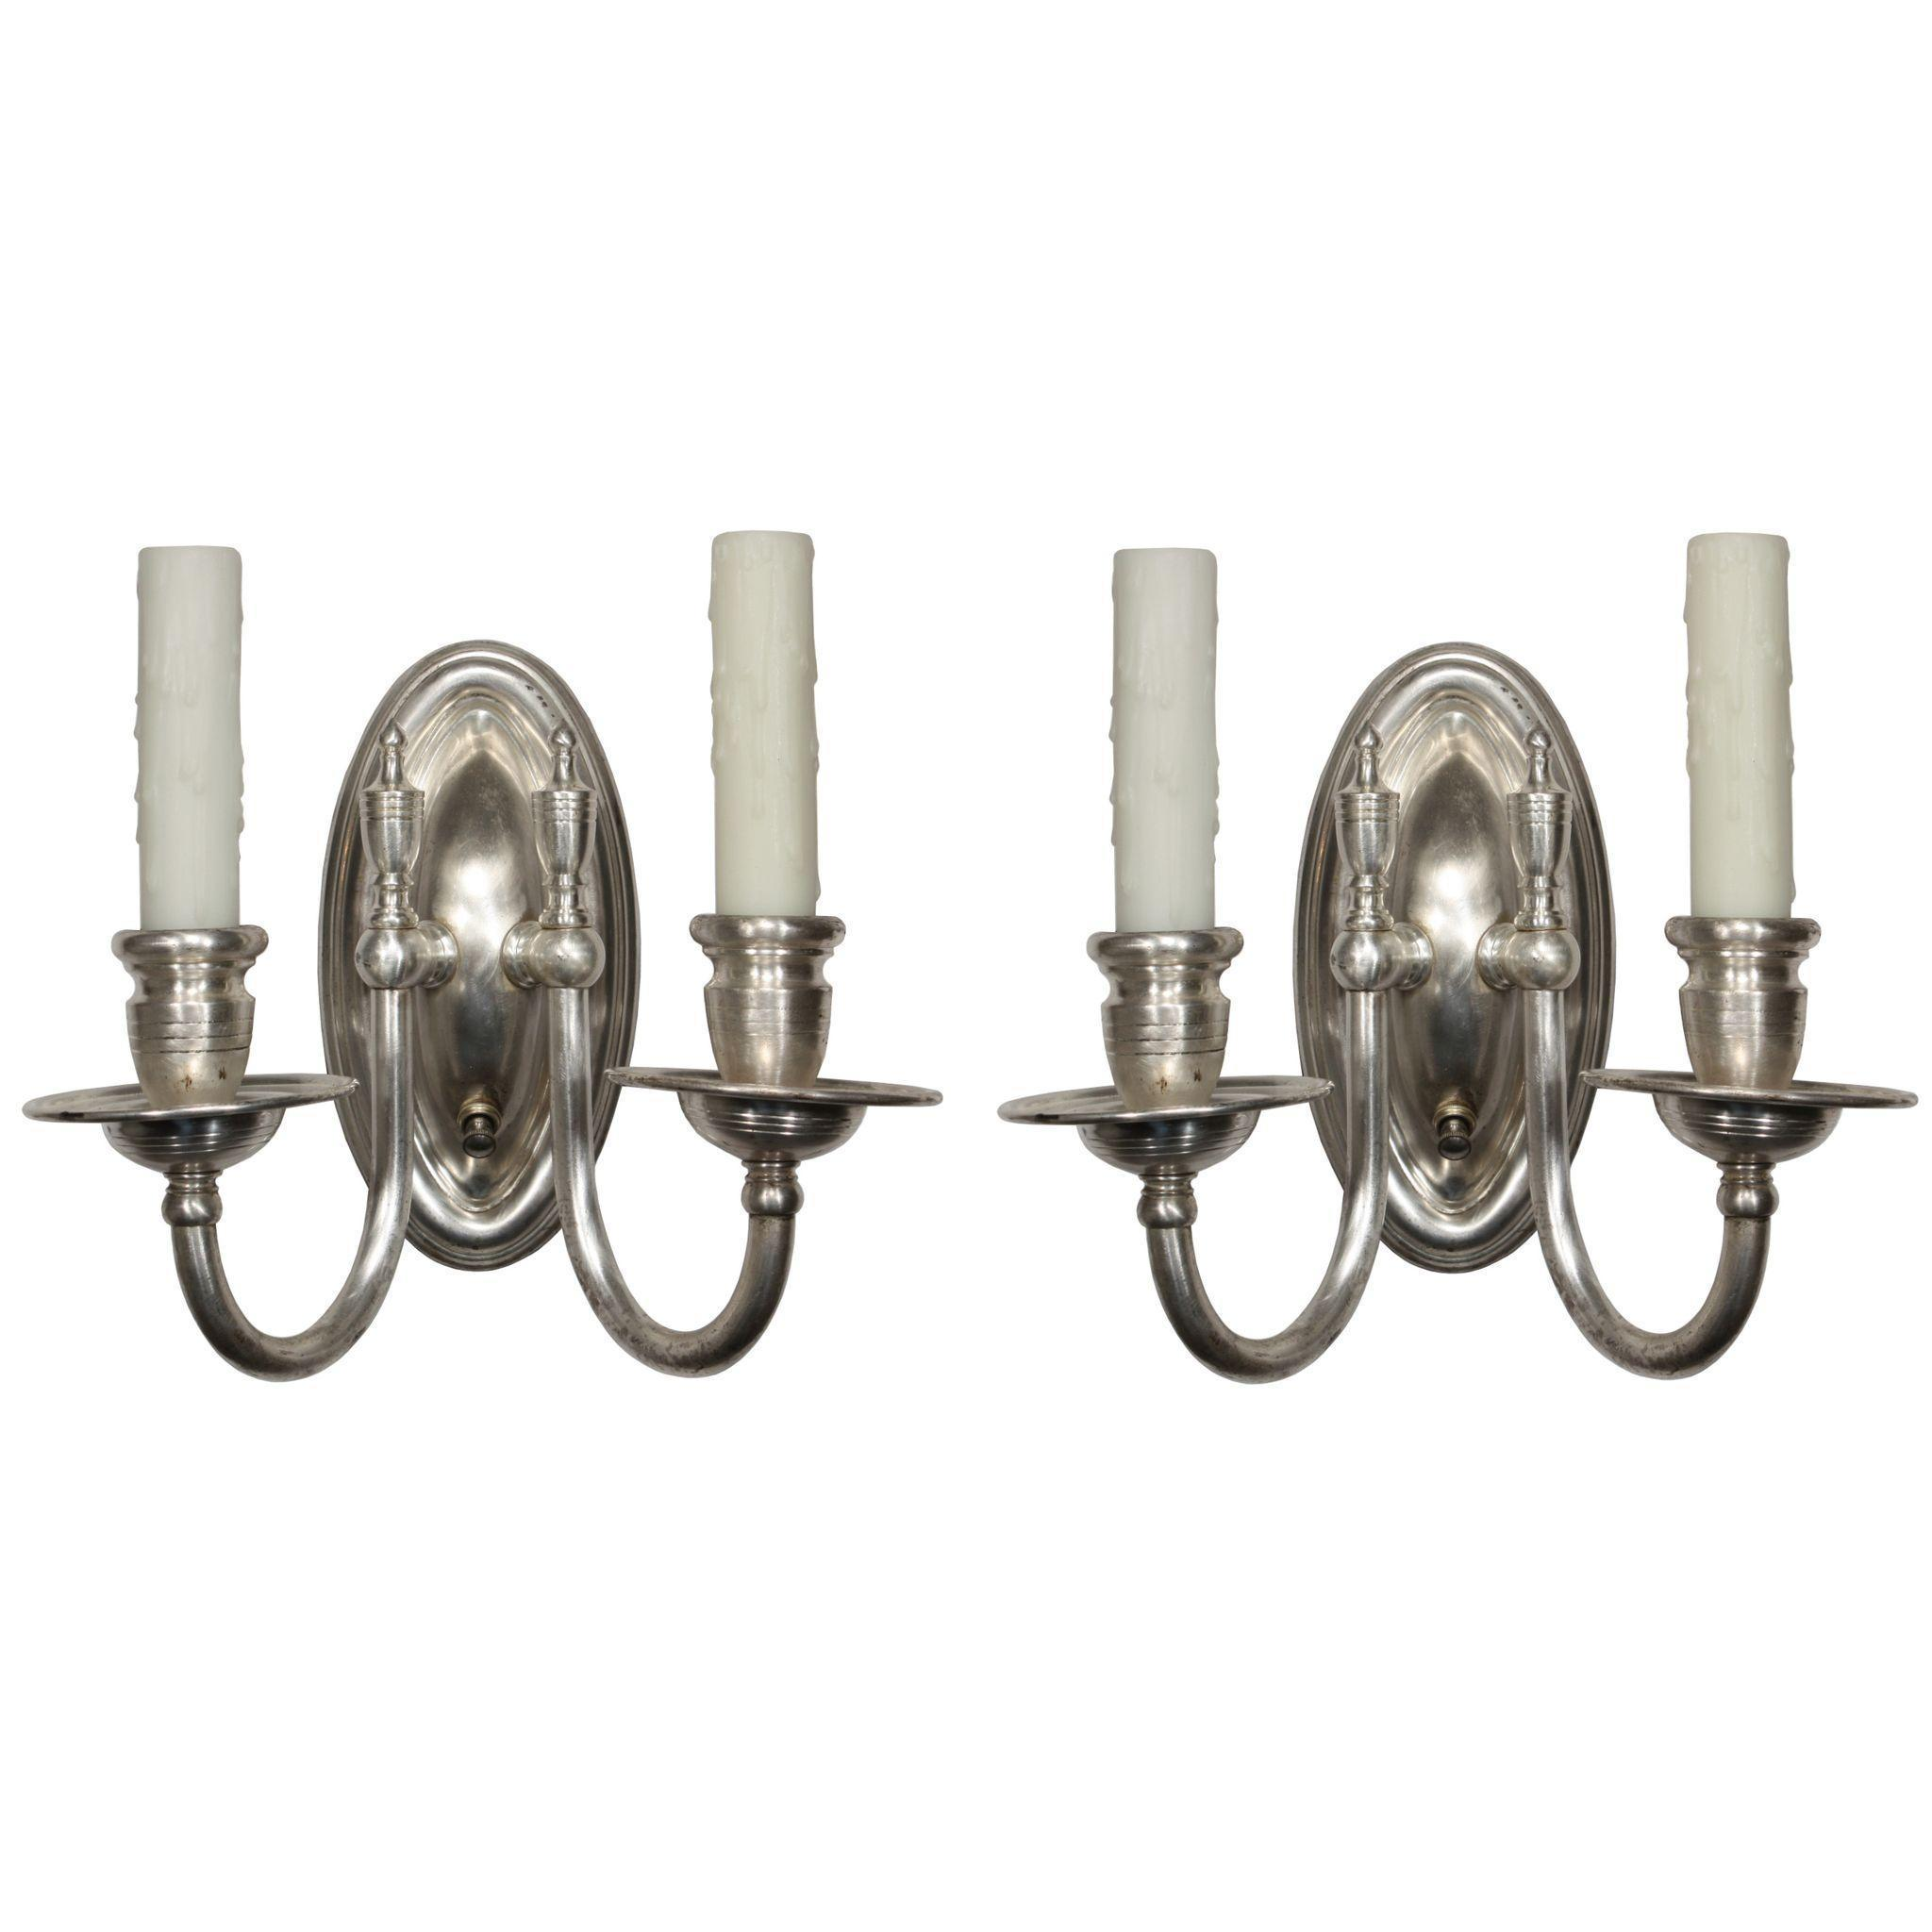 Elegant Pair of Antique Silver-Plated Sconces, Colonial Revival